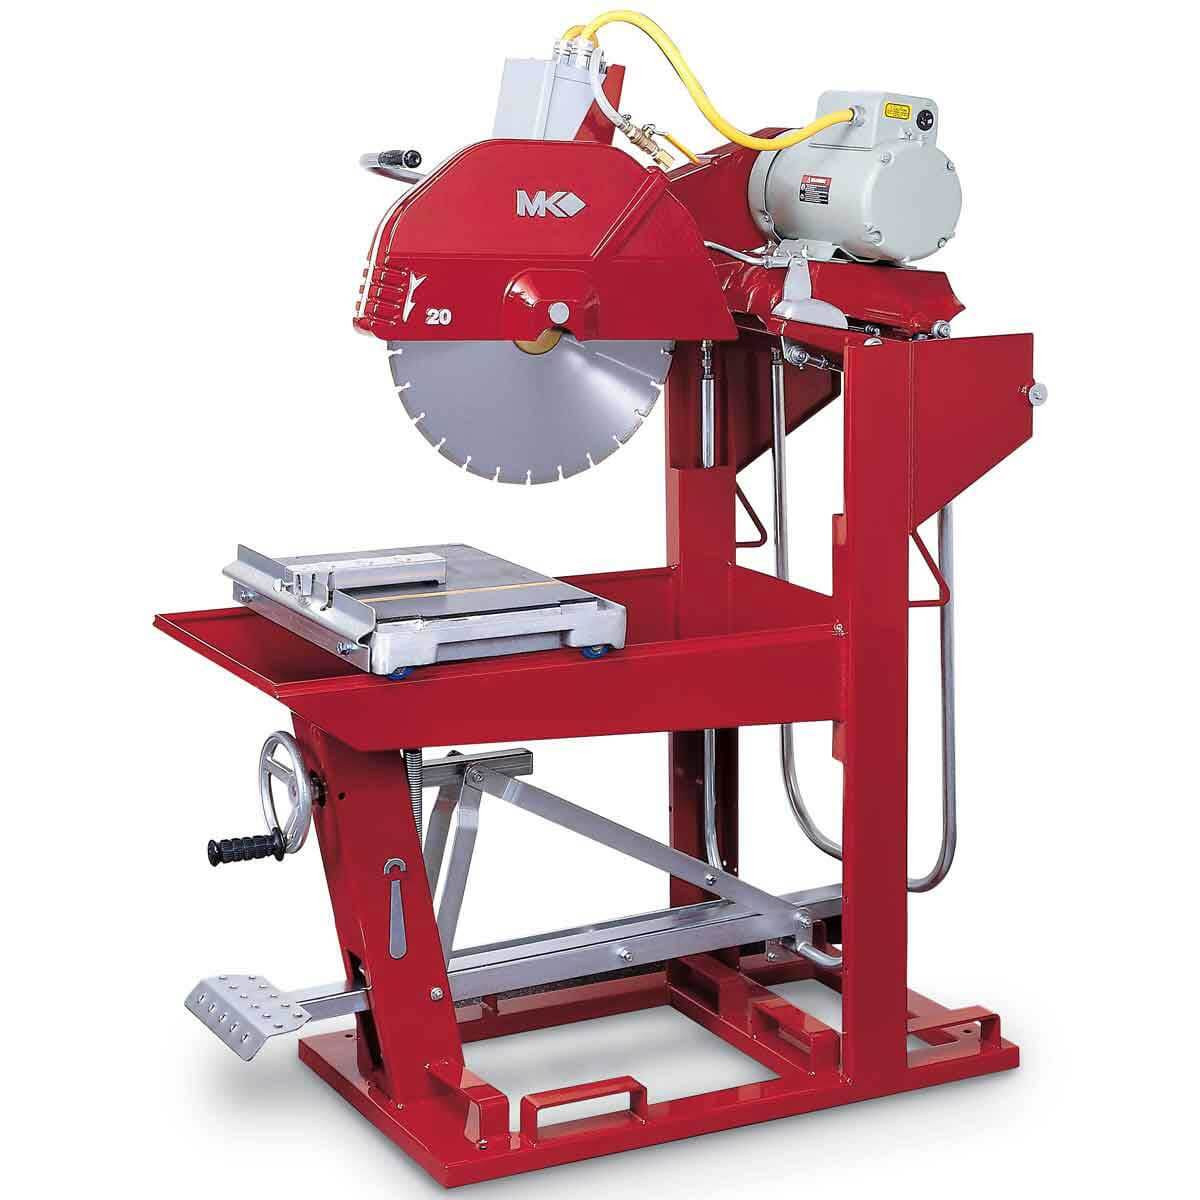 Wall Electric Masonry Saw : Mk electric series masonry saw contractors direct